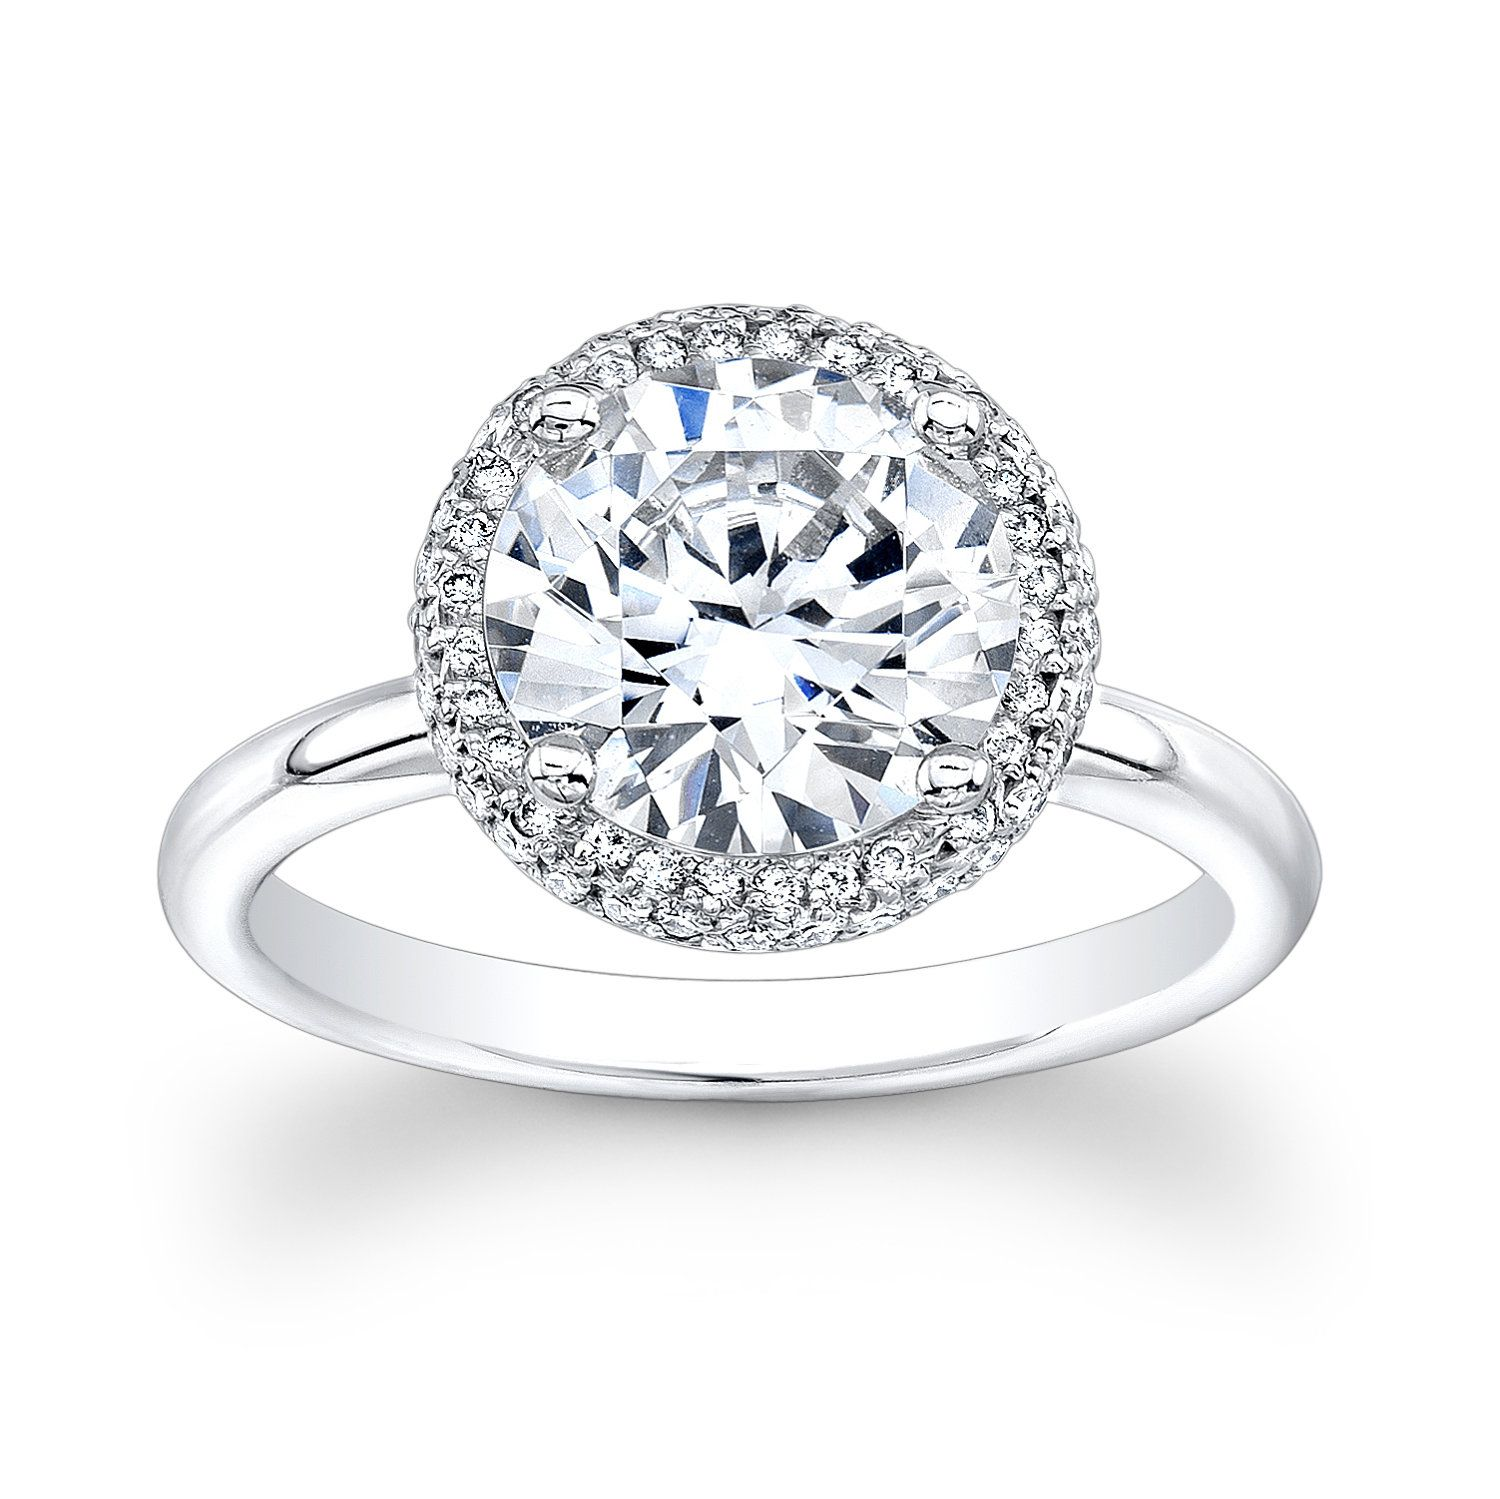 17 Best Images About Wedding Enement Ring Band On Pinterest